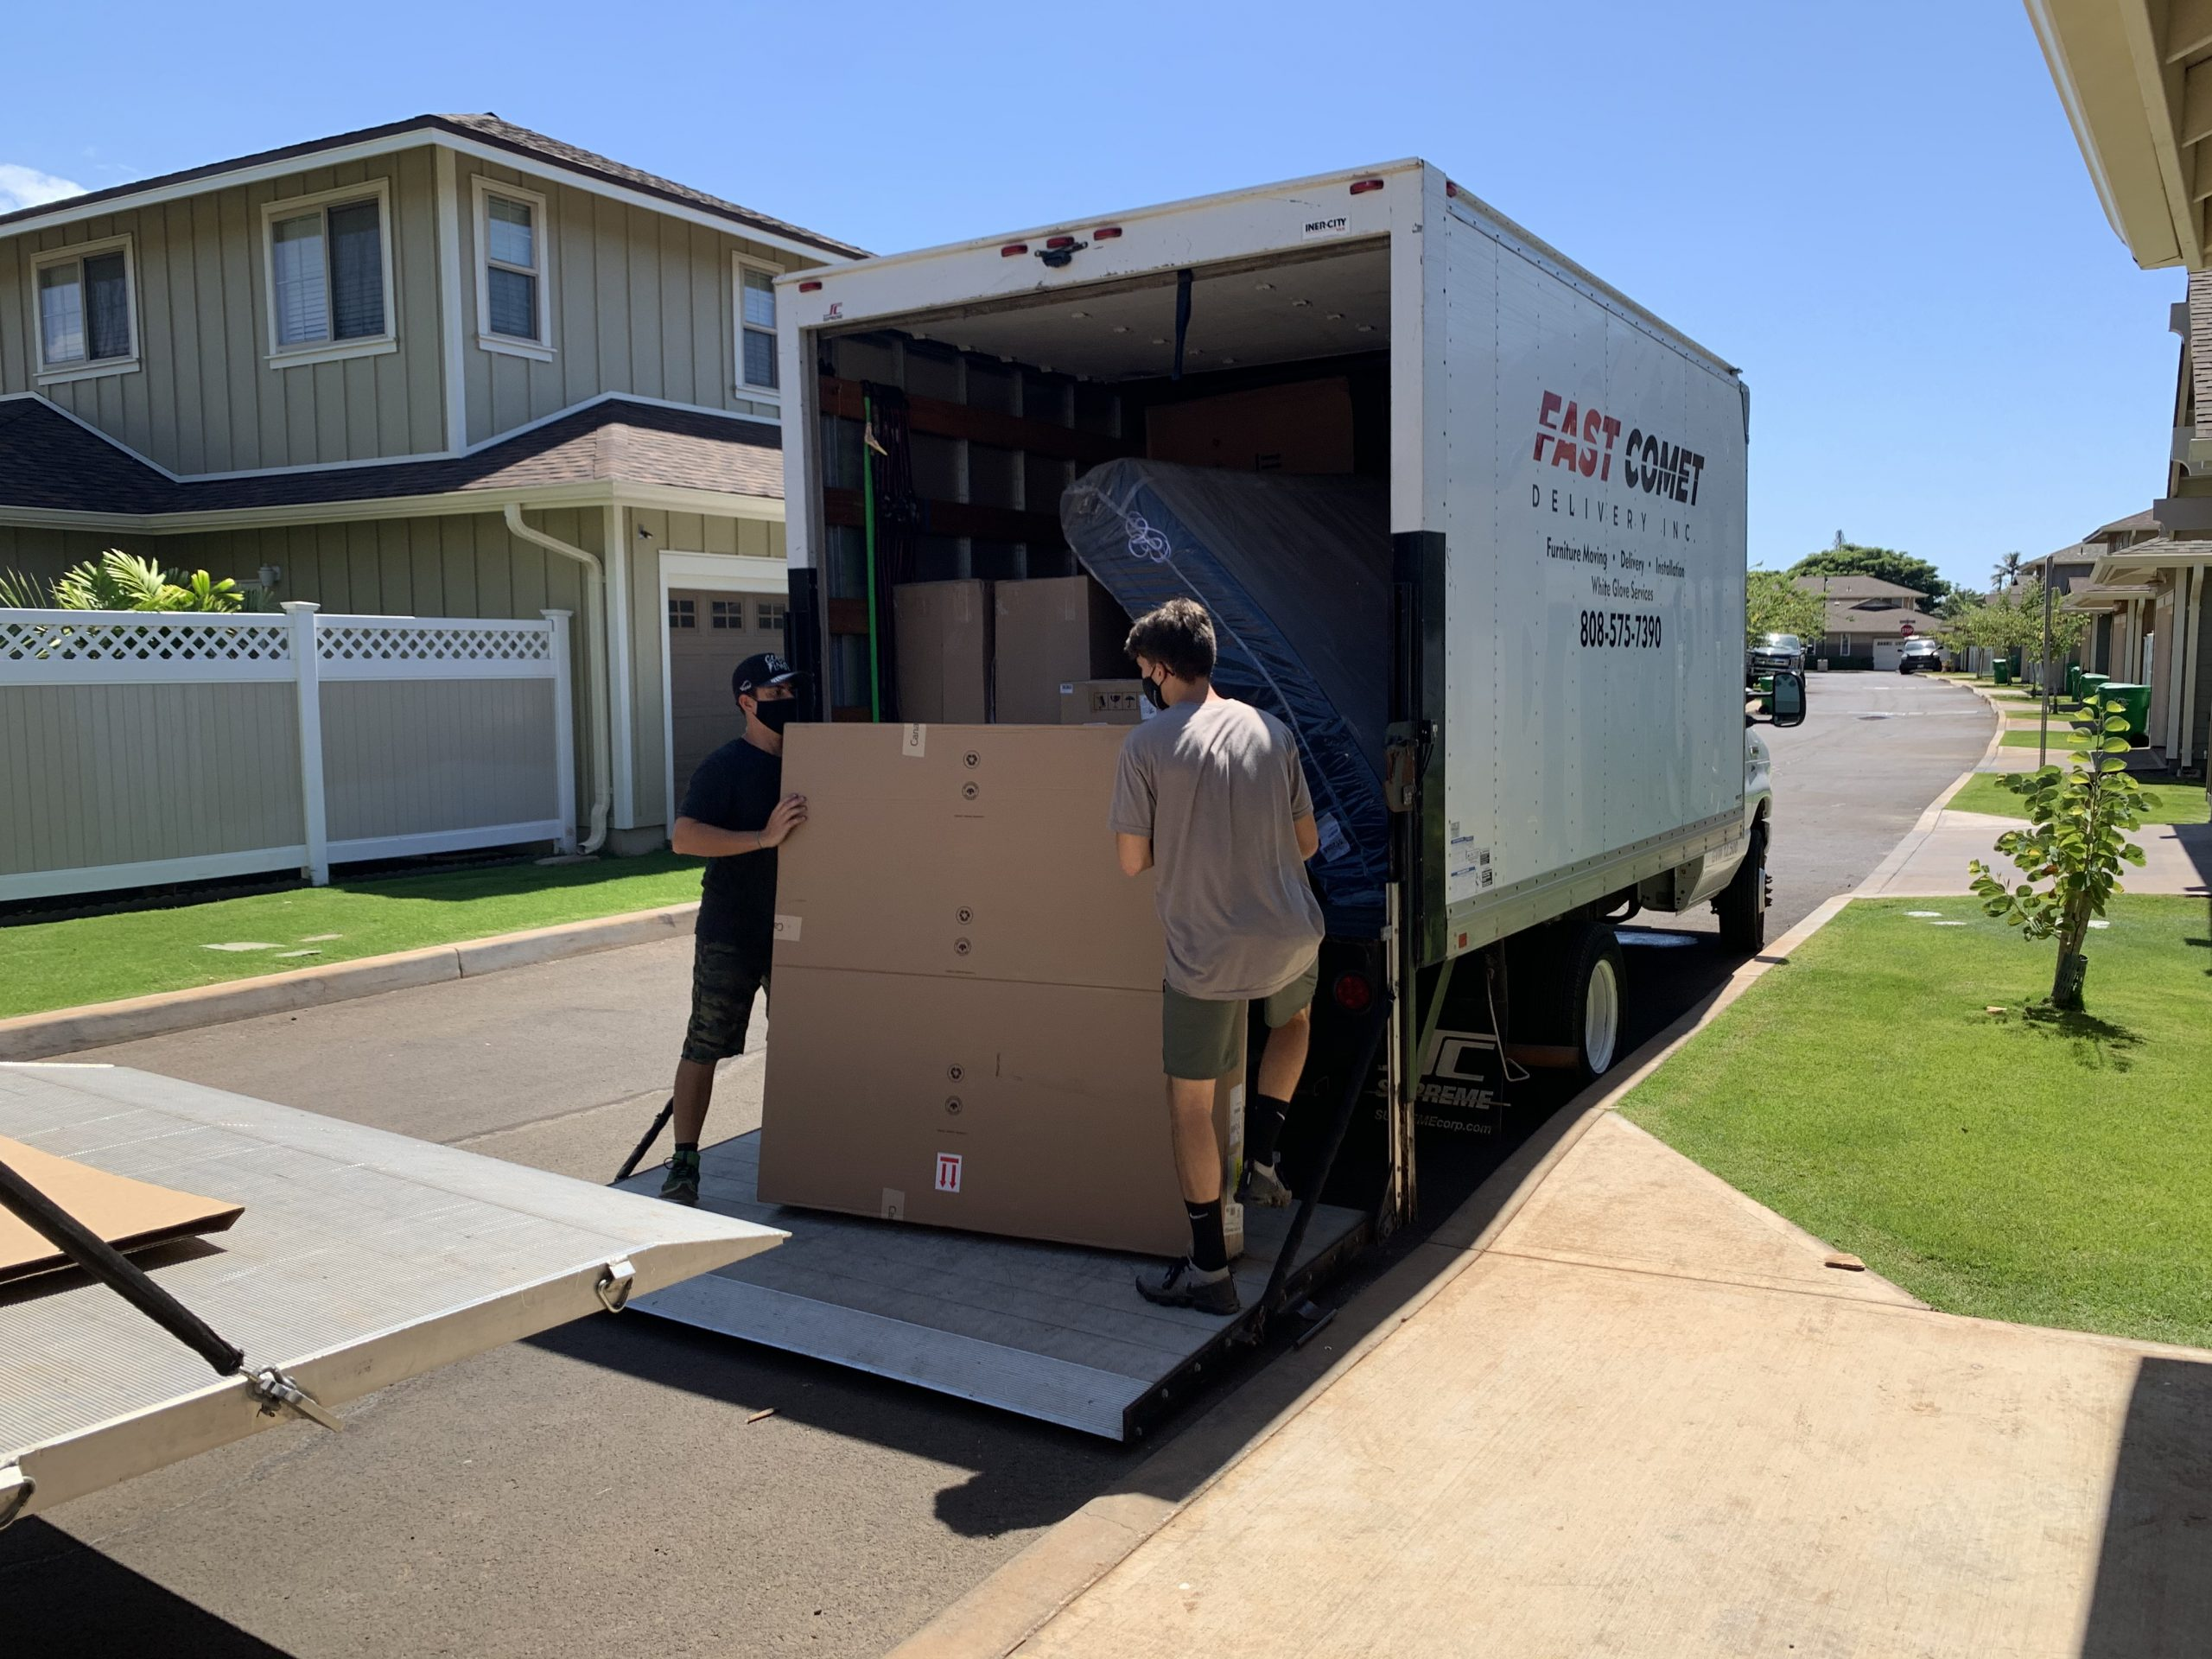 Fast Comet Delivery Truck 13 - Maui Hawaii